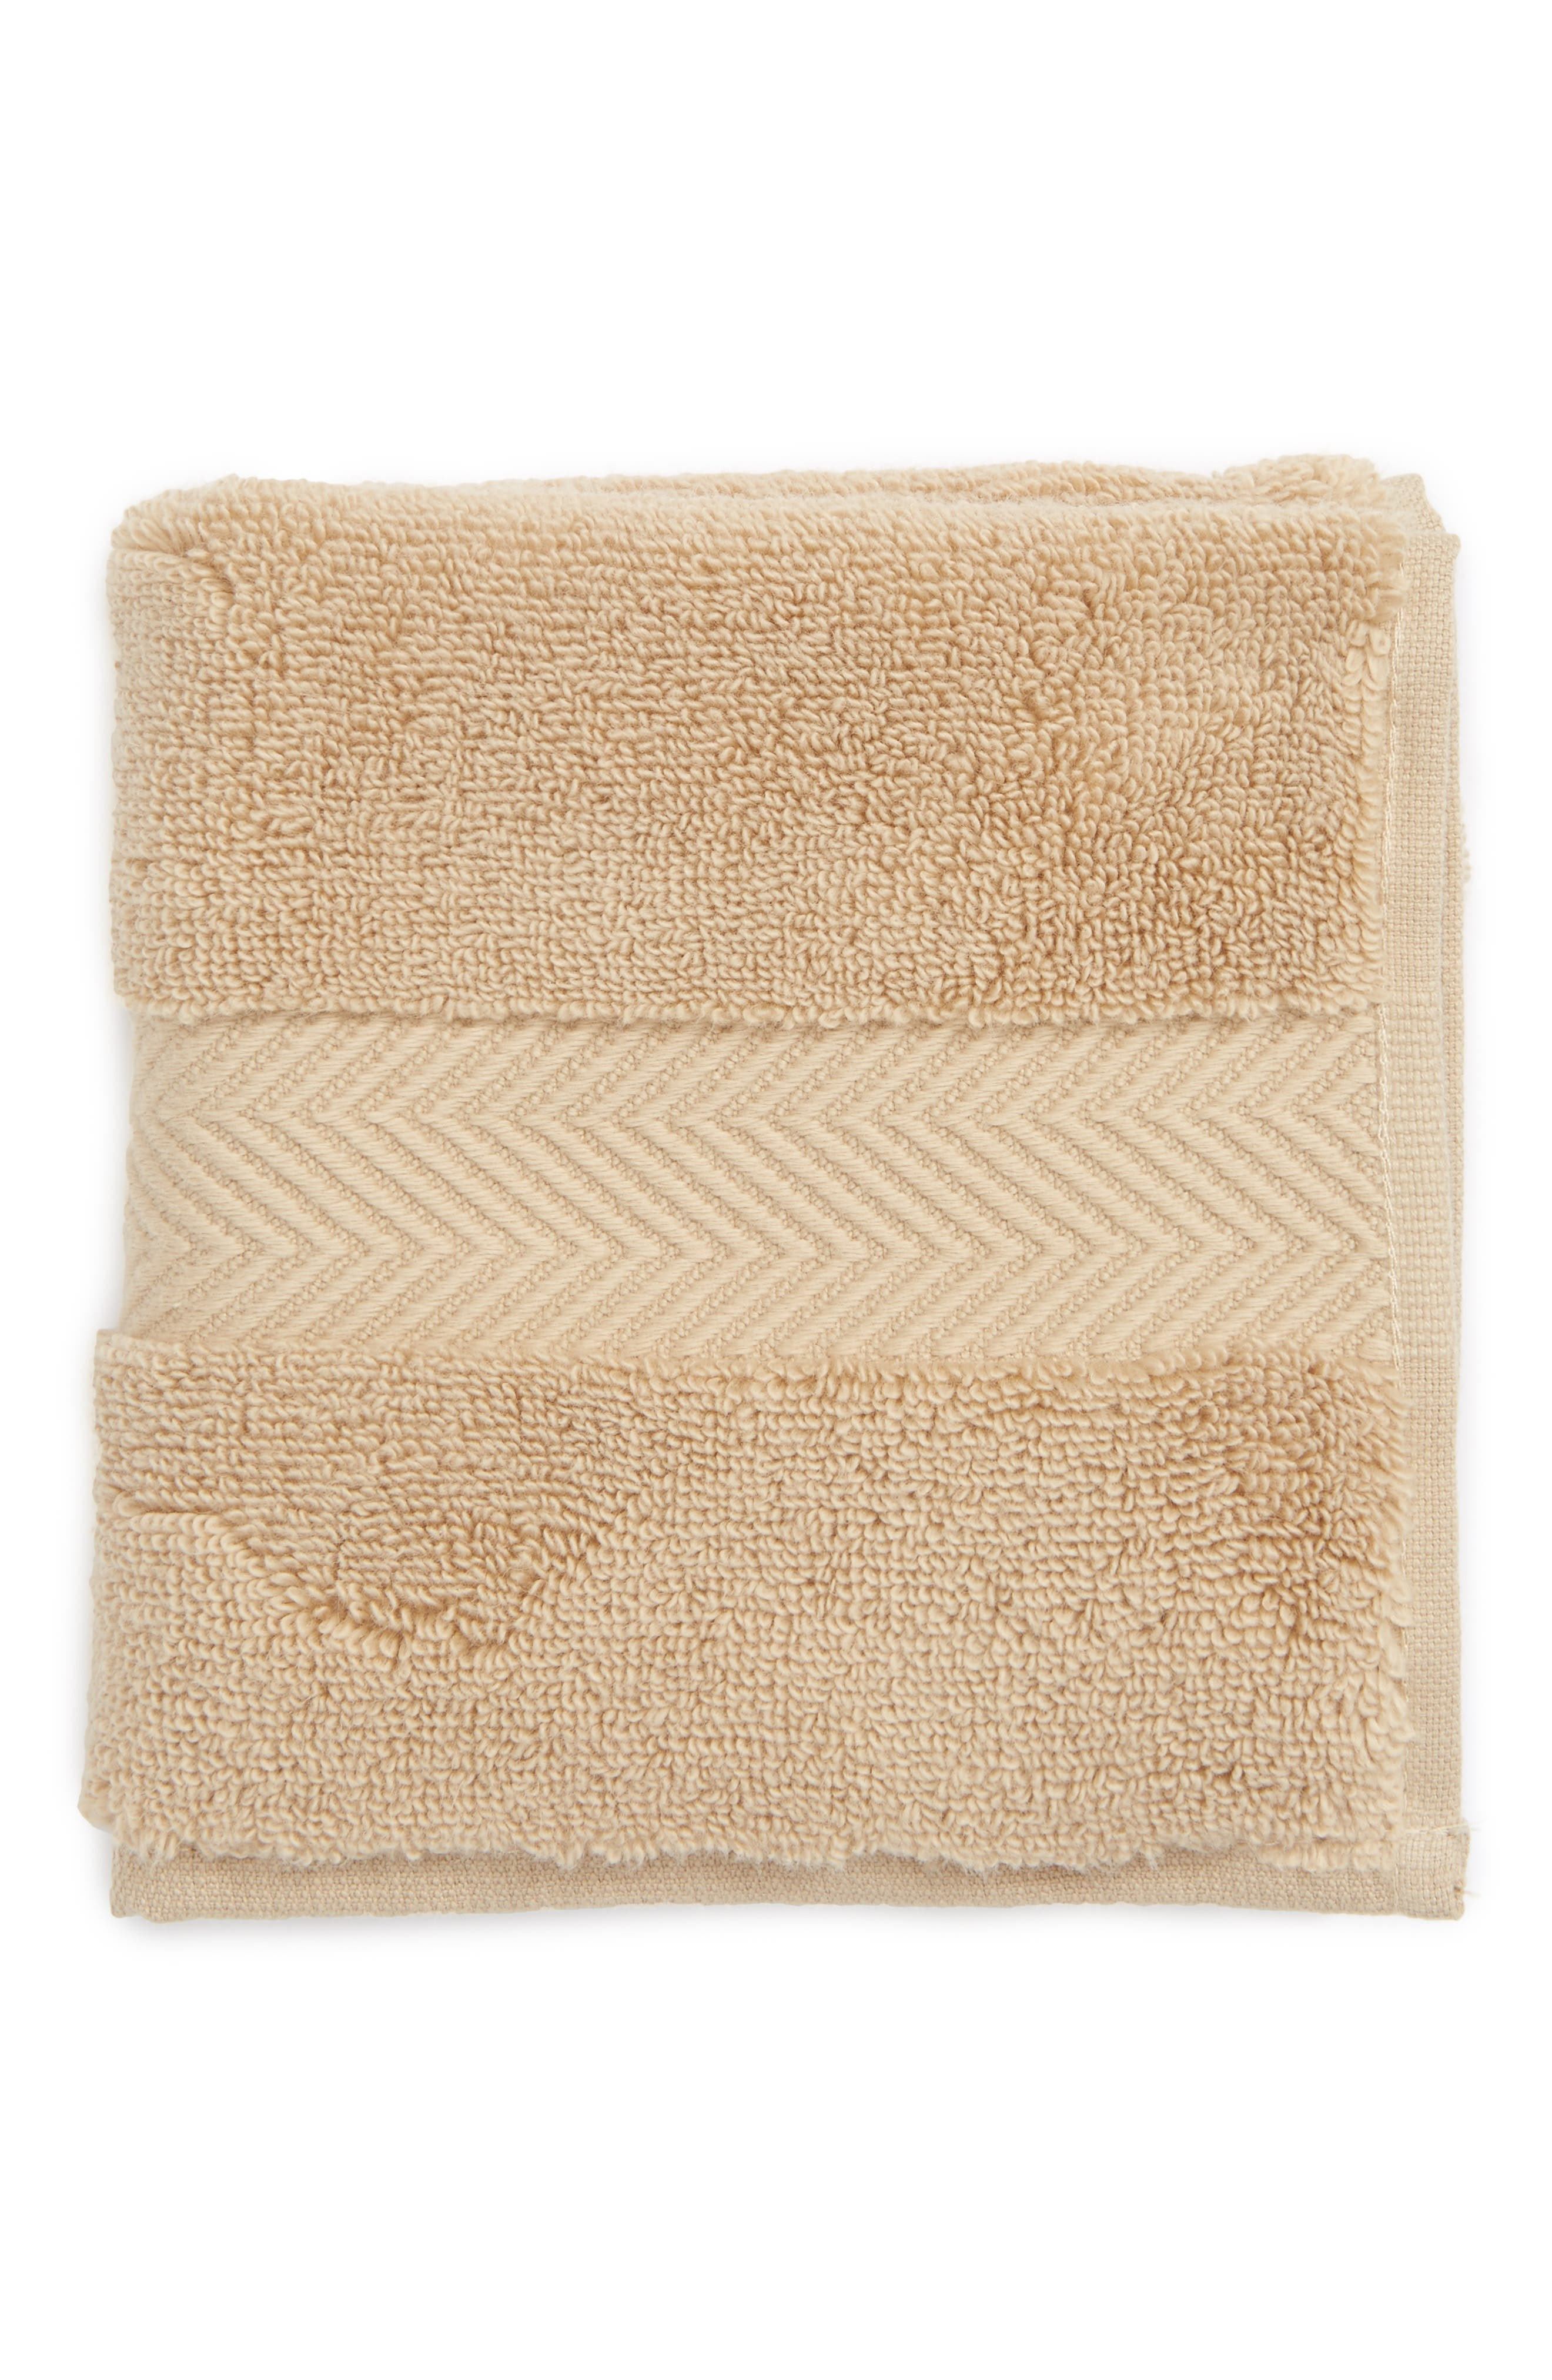 Hydrocotton Washcloth,                             Alternate thumbnail 58, color,